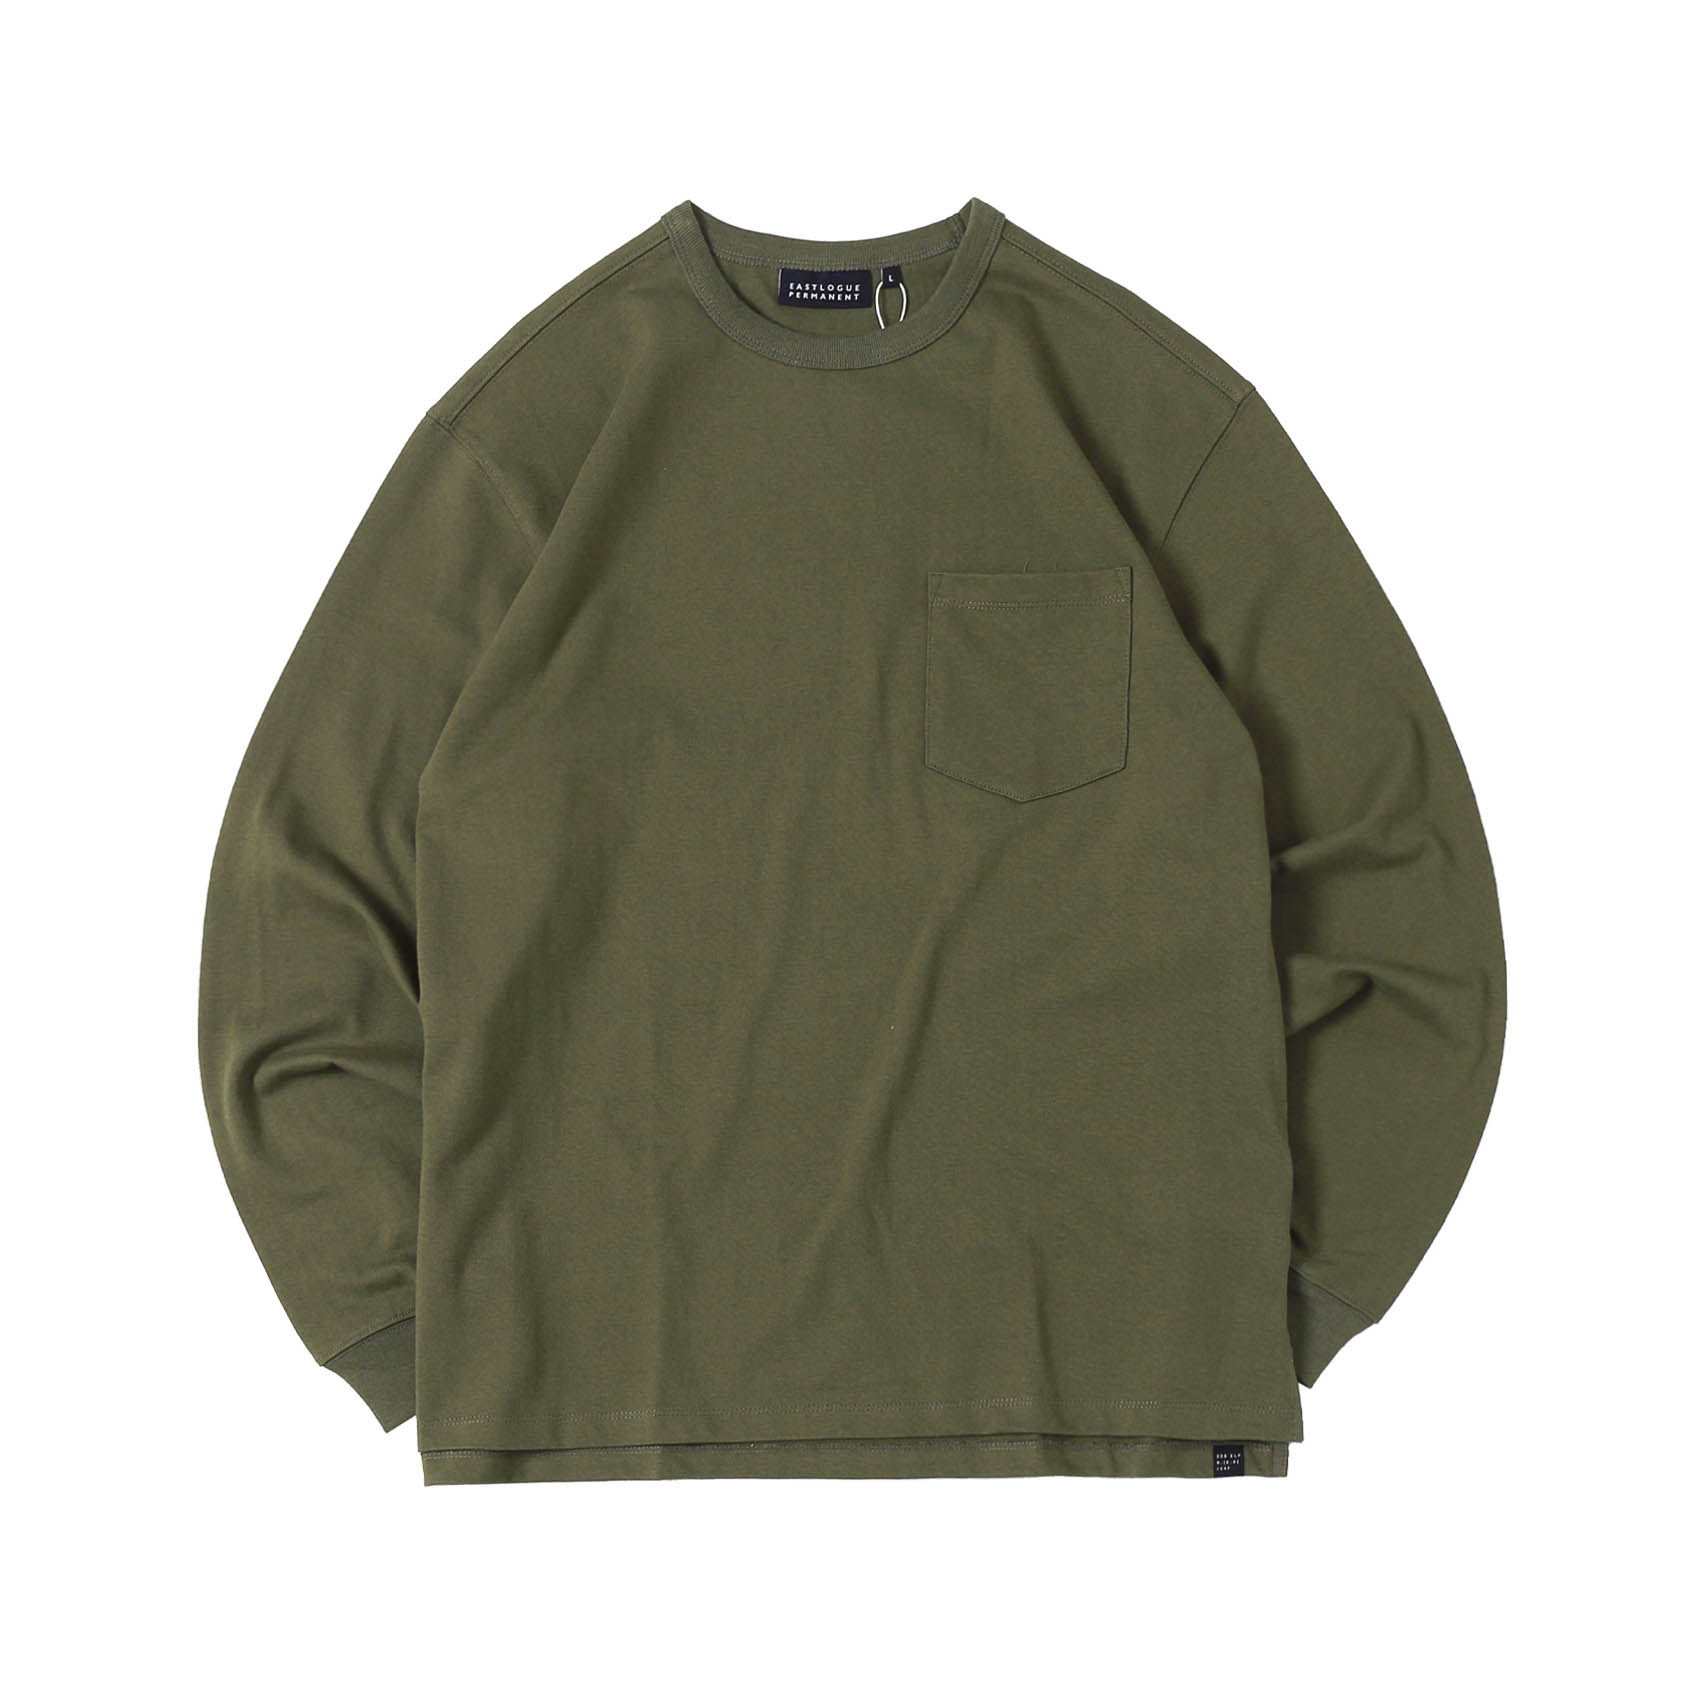 ONE POCKET L/S T-SHIRT - OLIVE